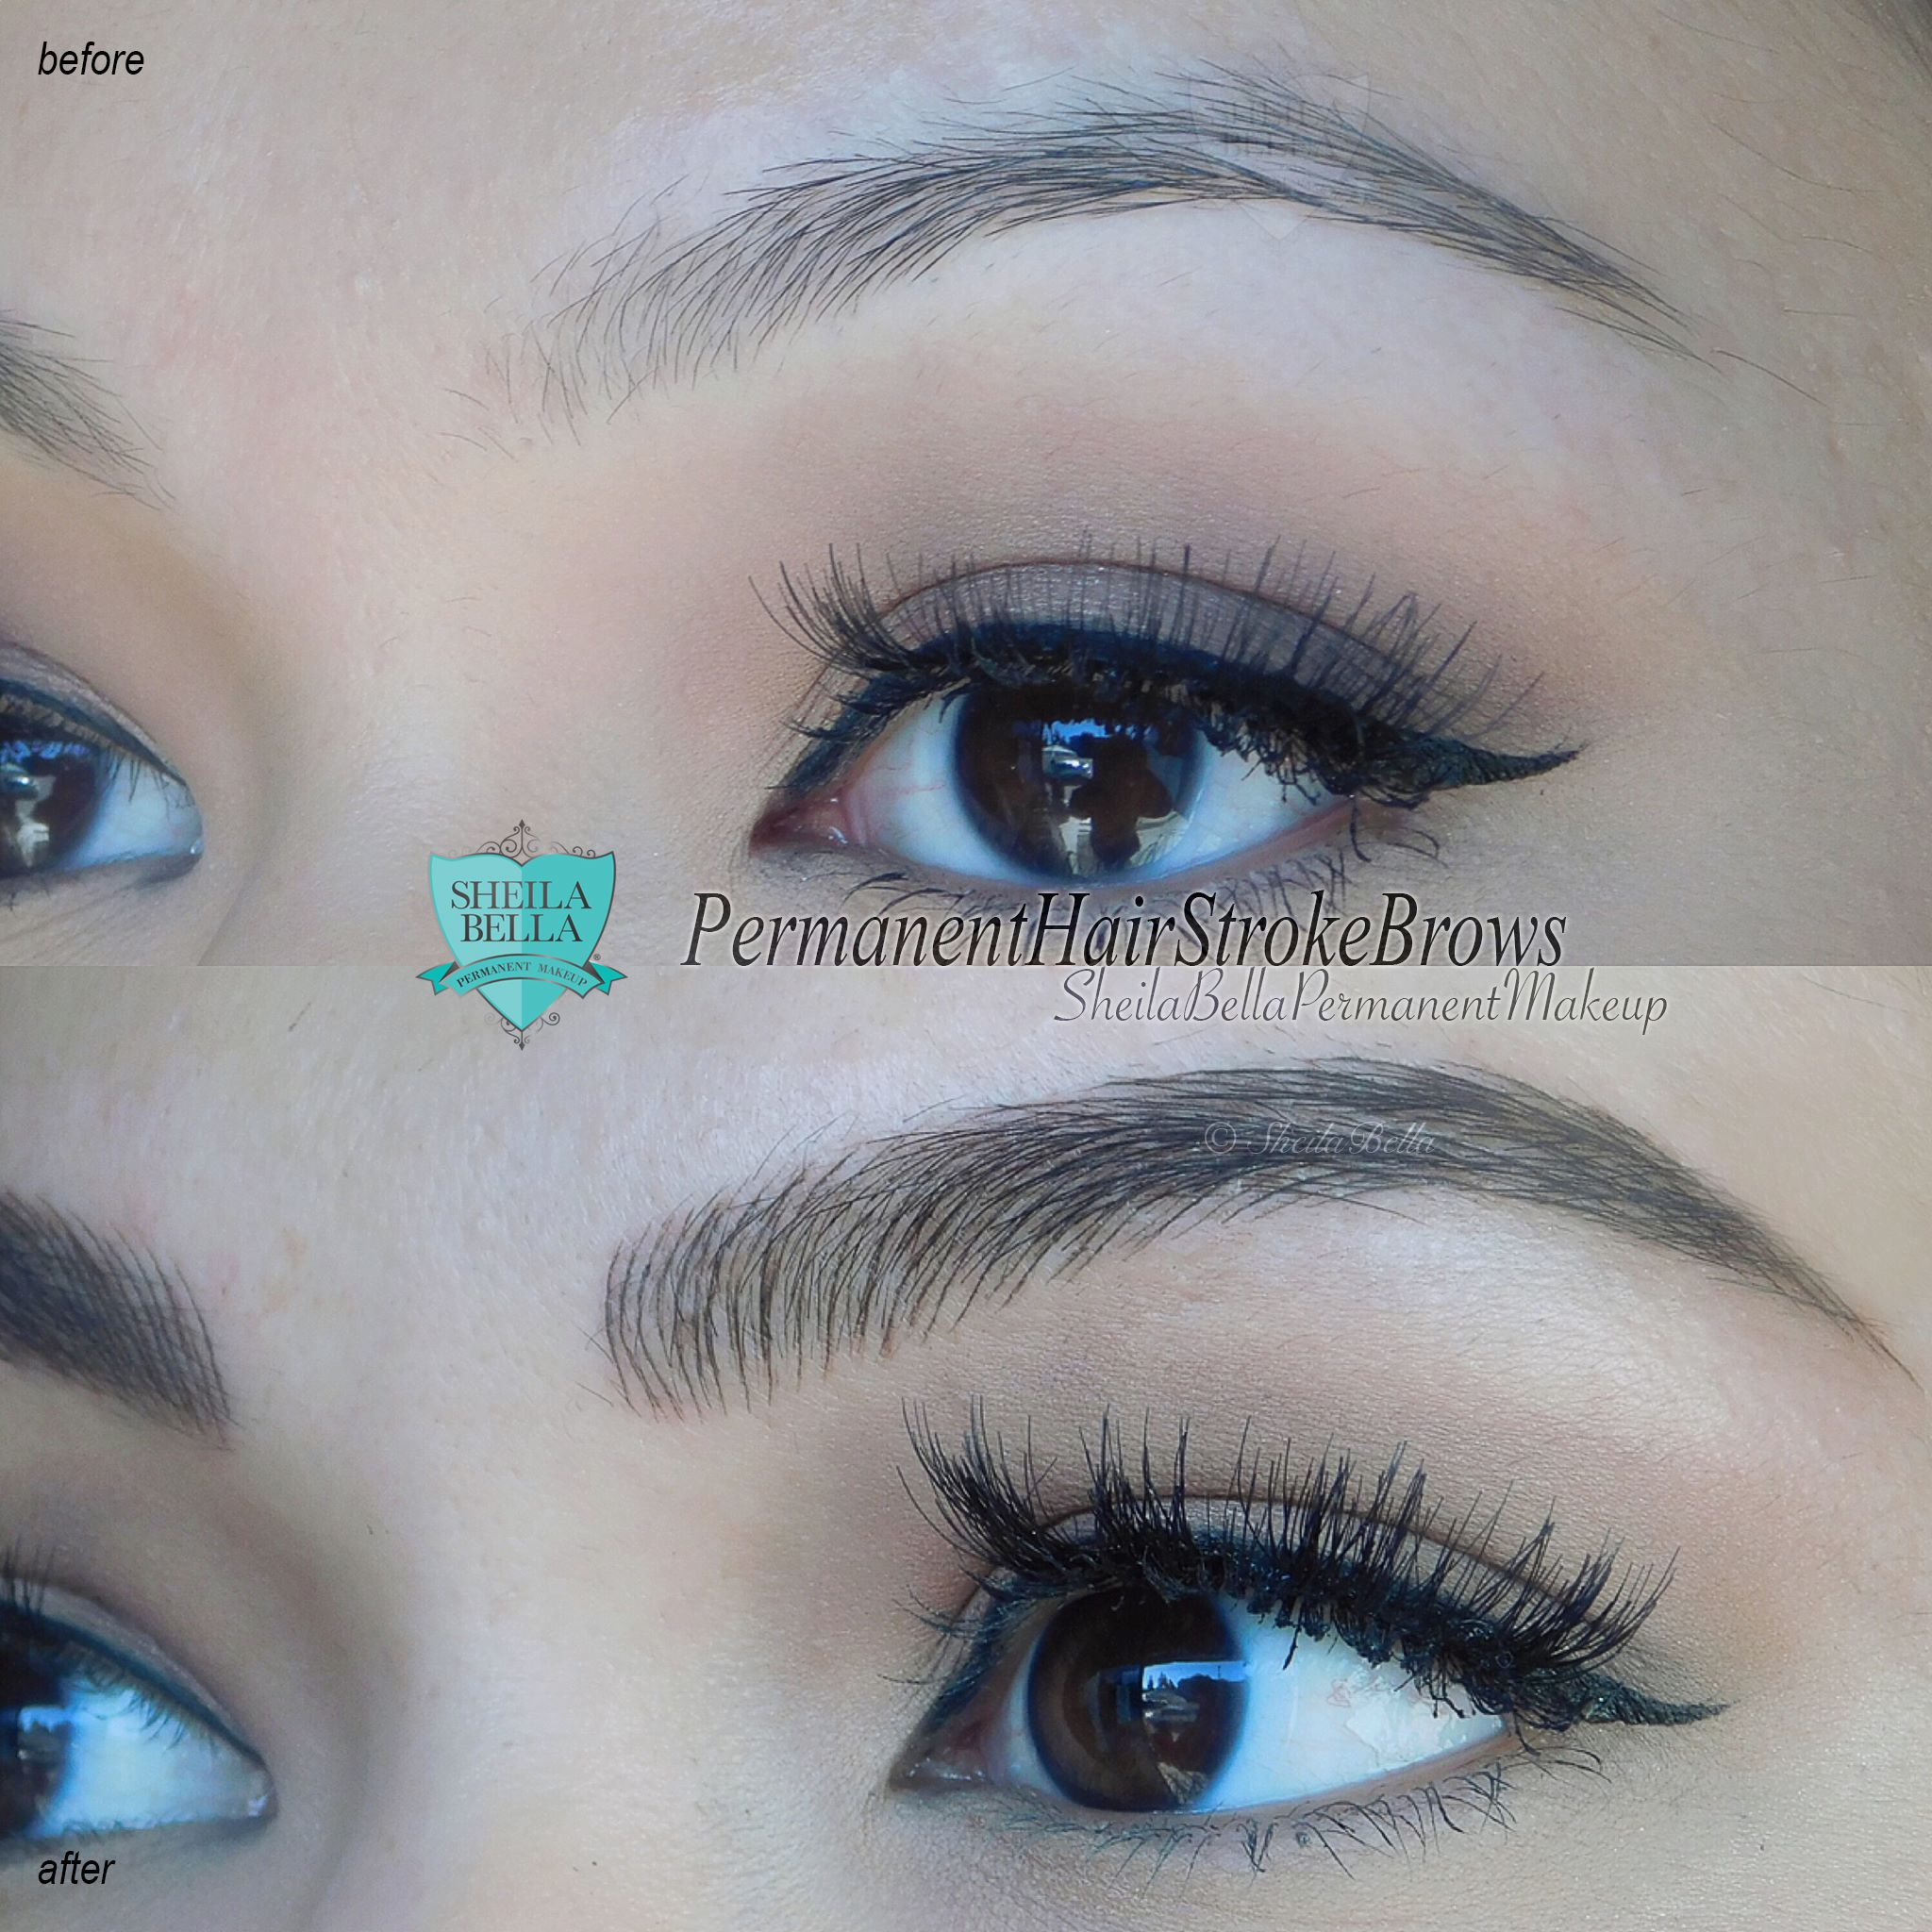 Best Microblading Clinic - Sheila Bella Permanent Makeup